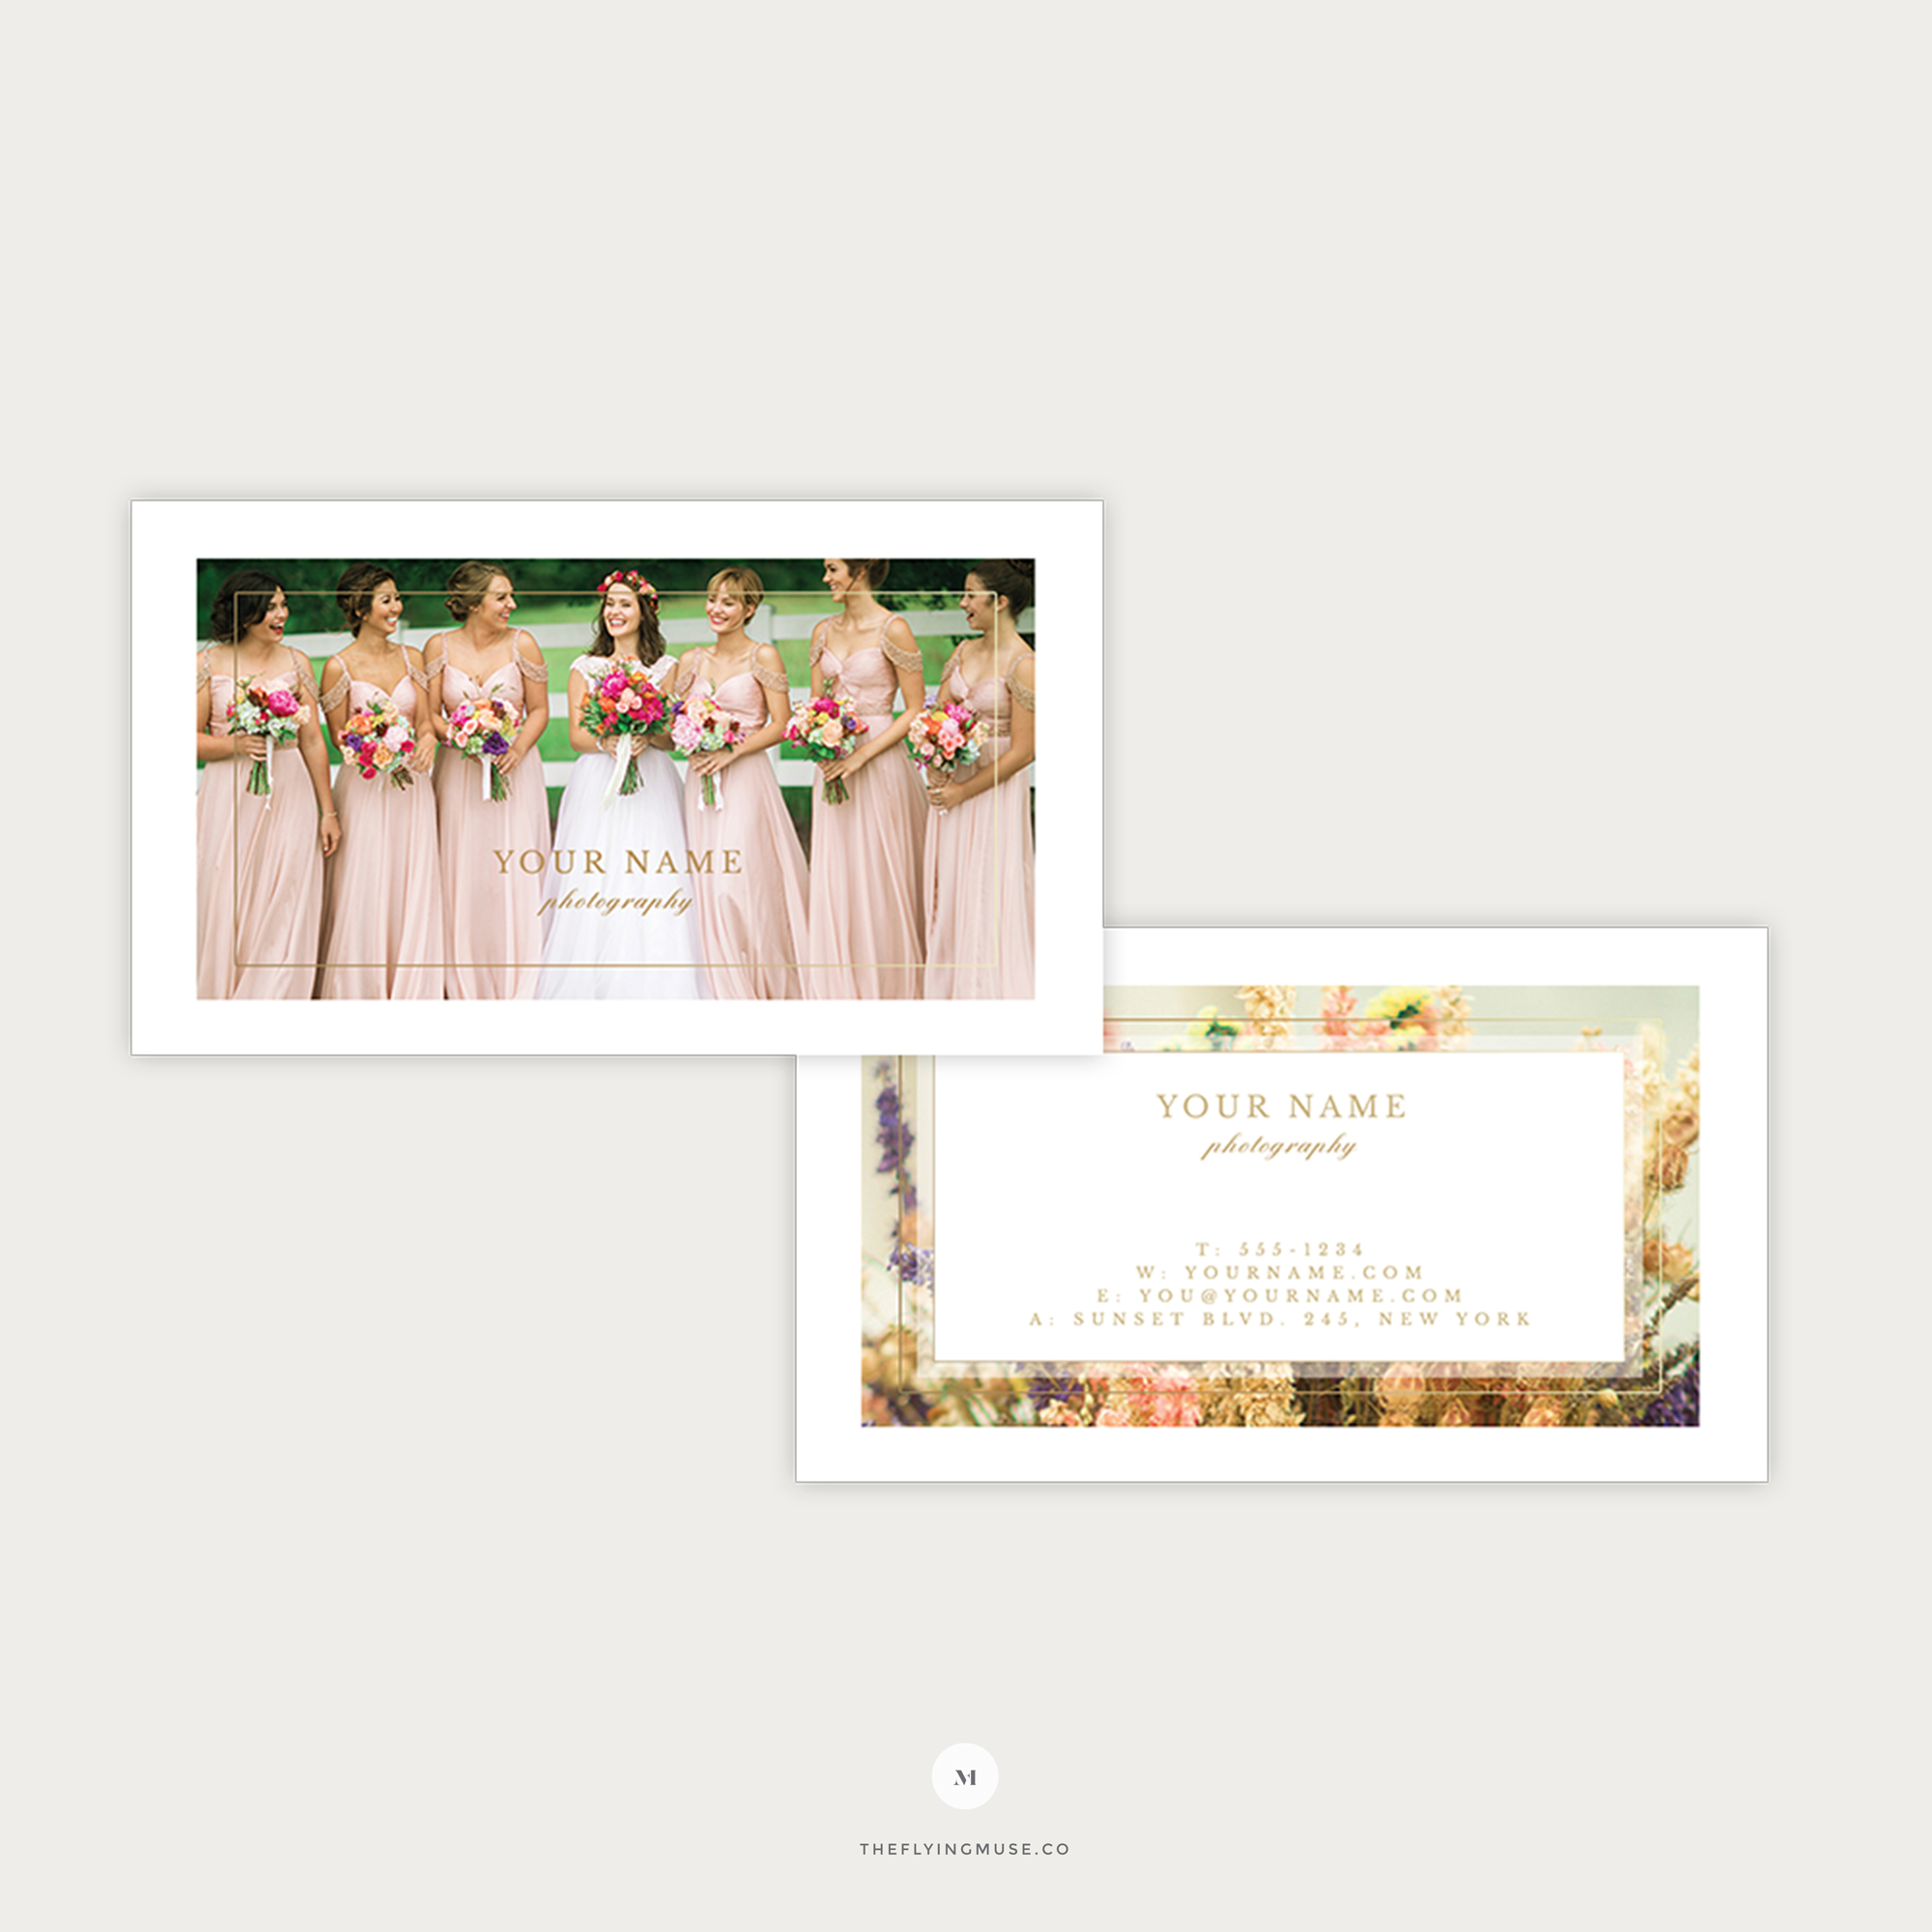 Elegant Wedding Photography Business Card Template The Flying Muse